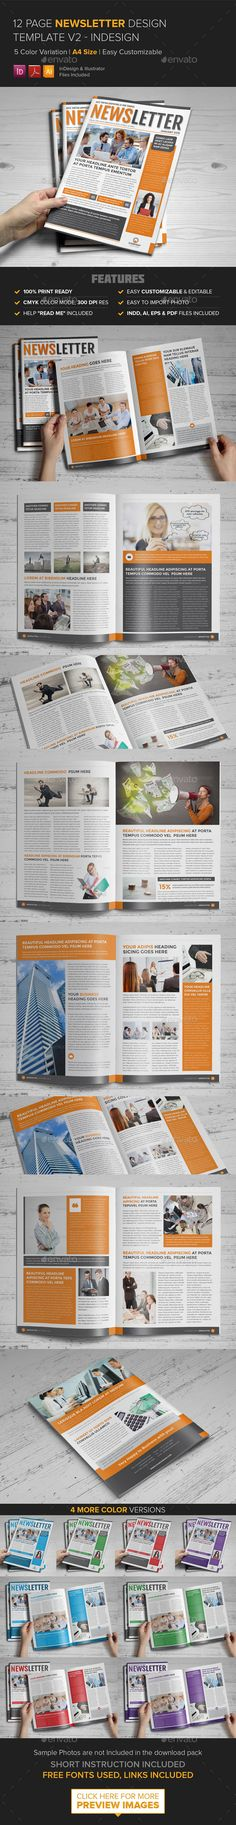 Newsletter Template v2 - InDesign - Newsletters Print Templates Download here : https://graphicriver.net/item/newsletter-template-v2-indesign/9406190?s_rank=246&ref=Al-fatih